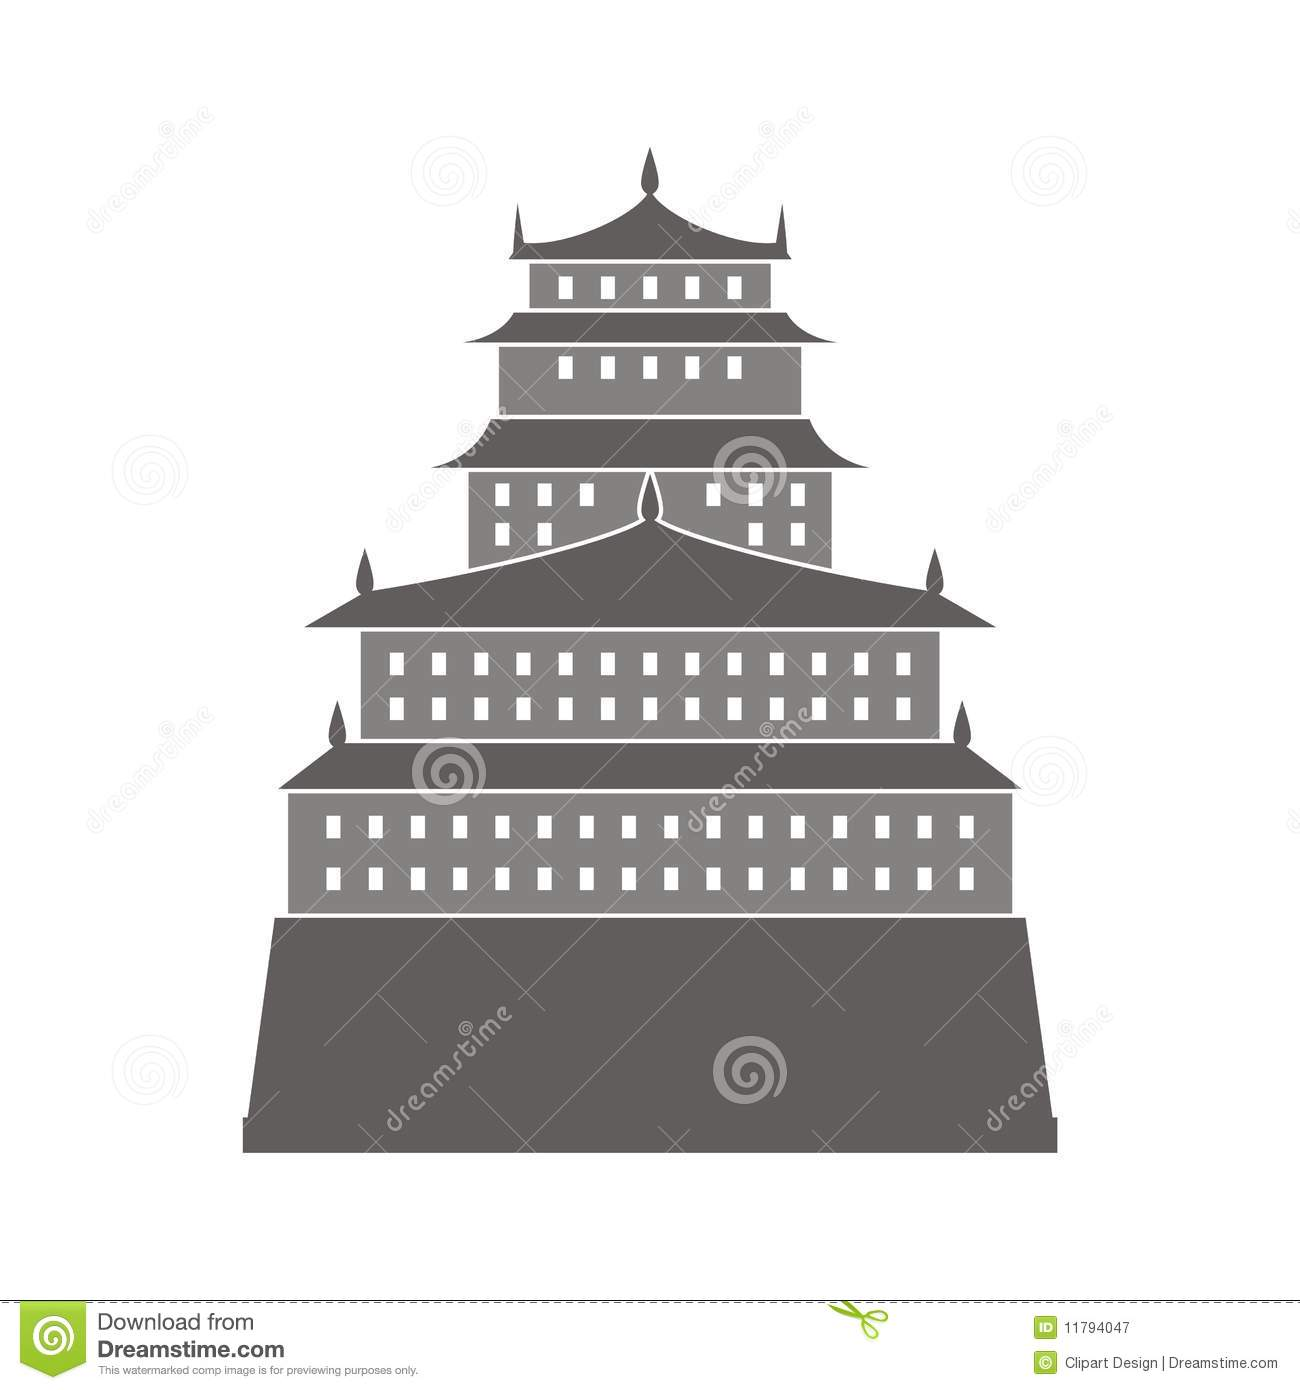 Chinese Castle Illustration Royalty Free Stock Photography.